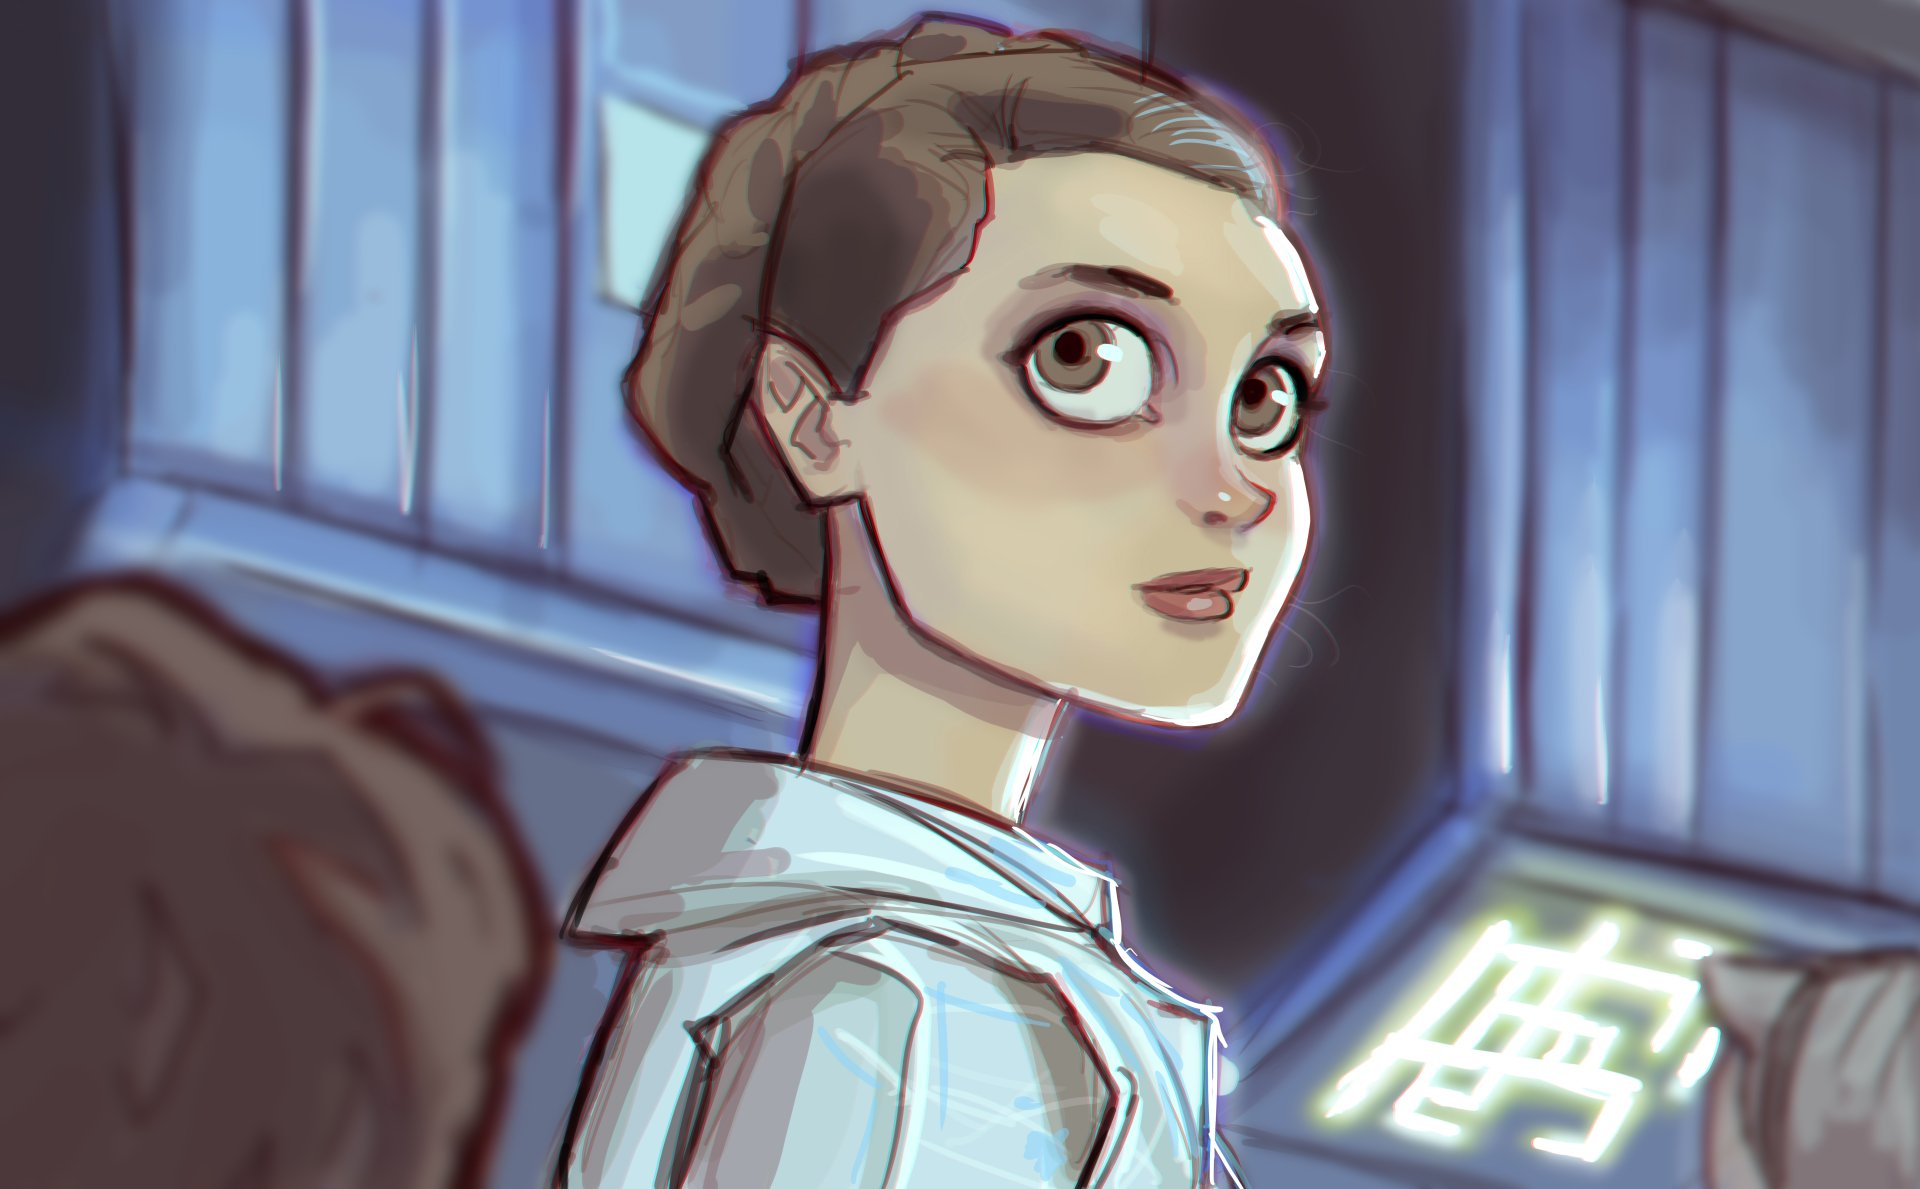 Sci Fi - Star Wars  Princess Leia Wallpaper